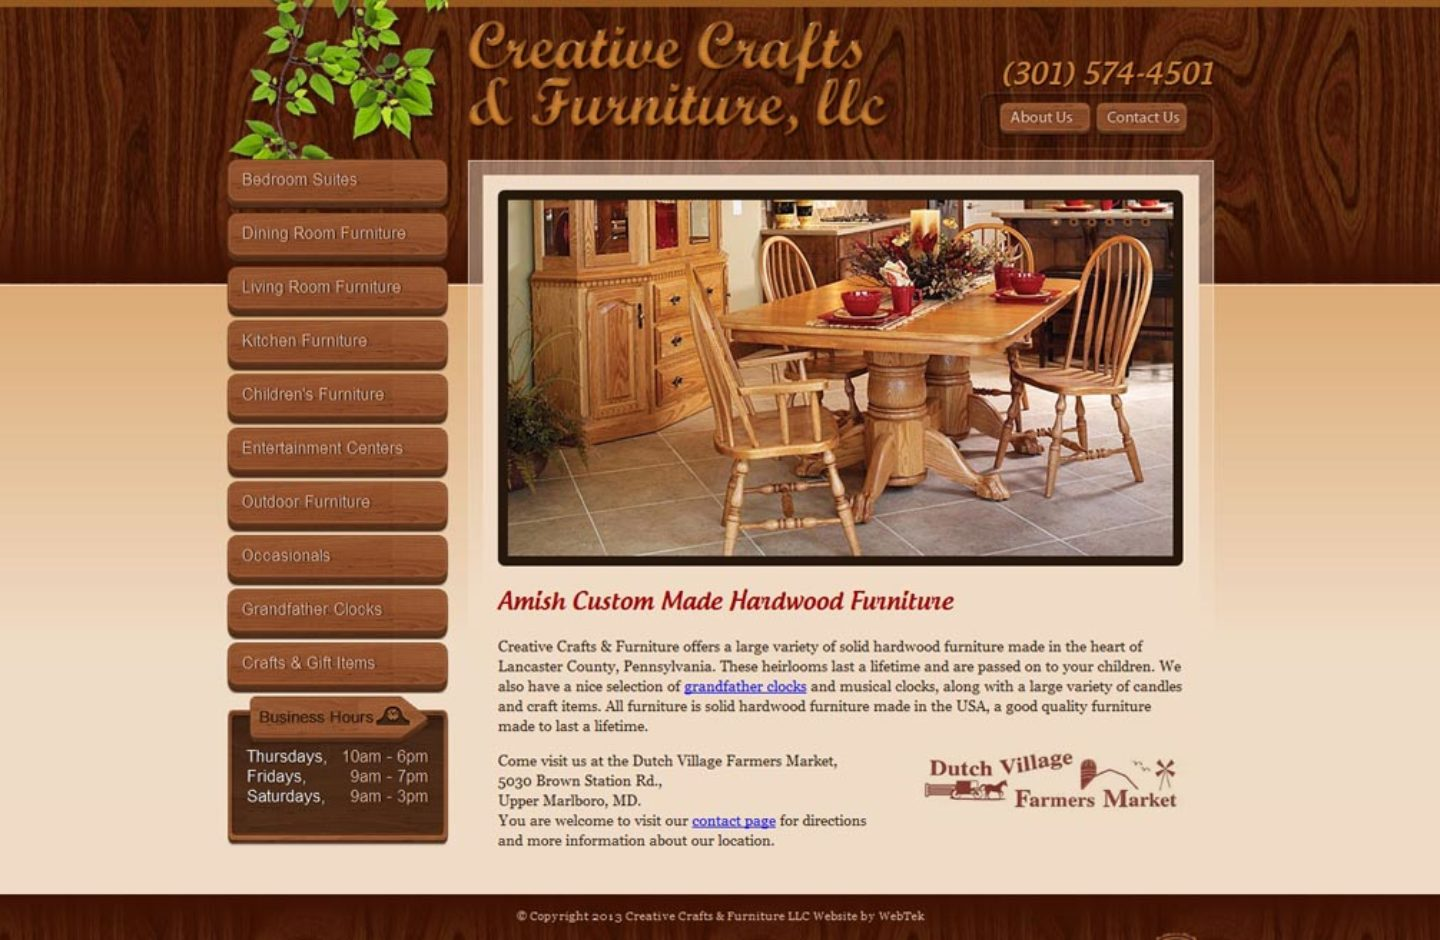 Creative Crafts and Furniture